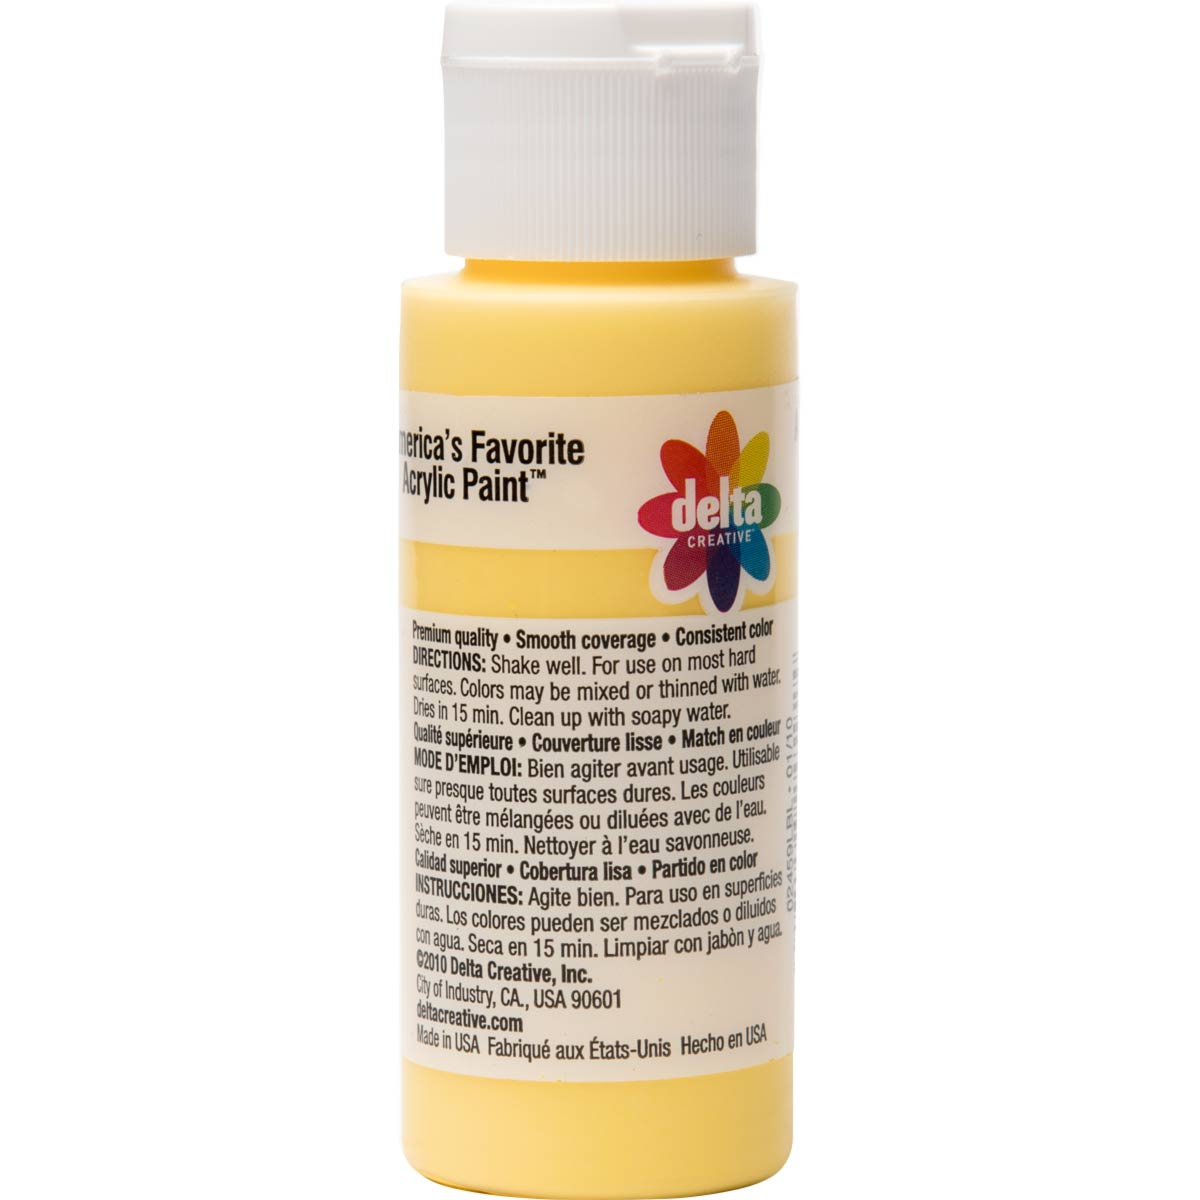 Delta Ceramcoat ® Acrylic Paint - Crocus Yellow, 2 oz.